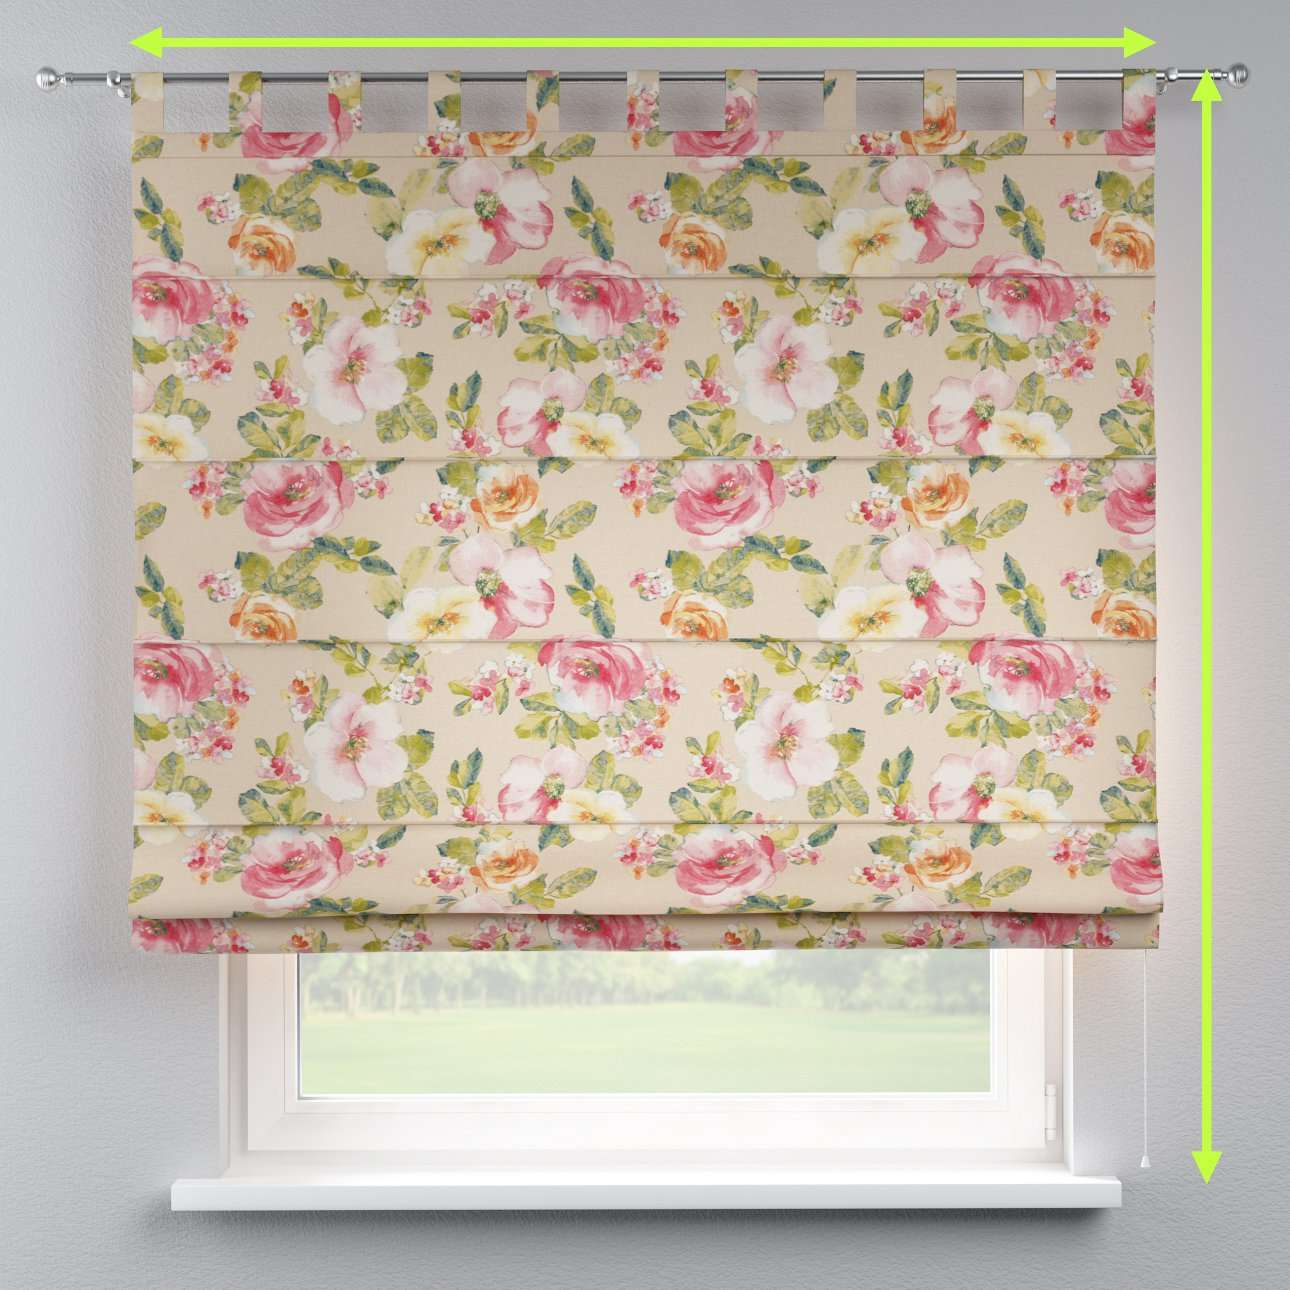 Verona tab top roman blind in collection Londres, fabric: 140-43